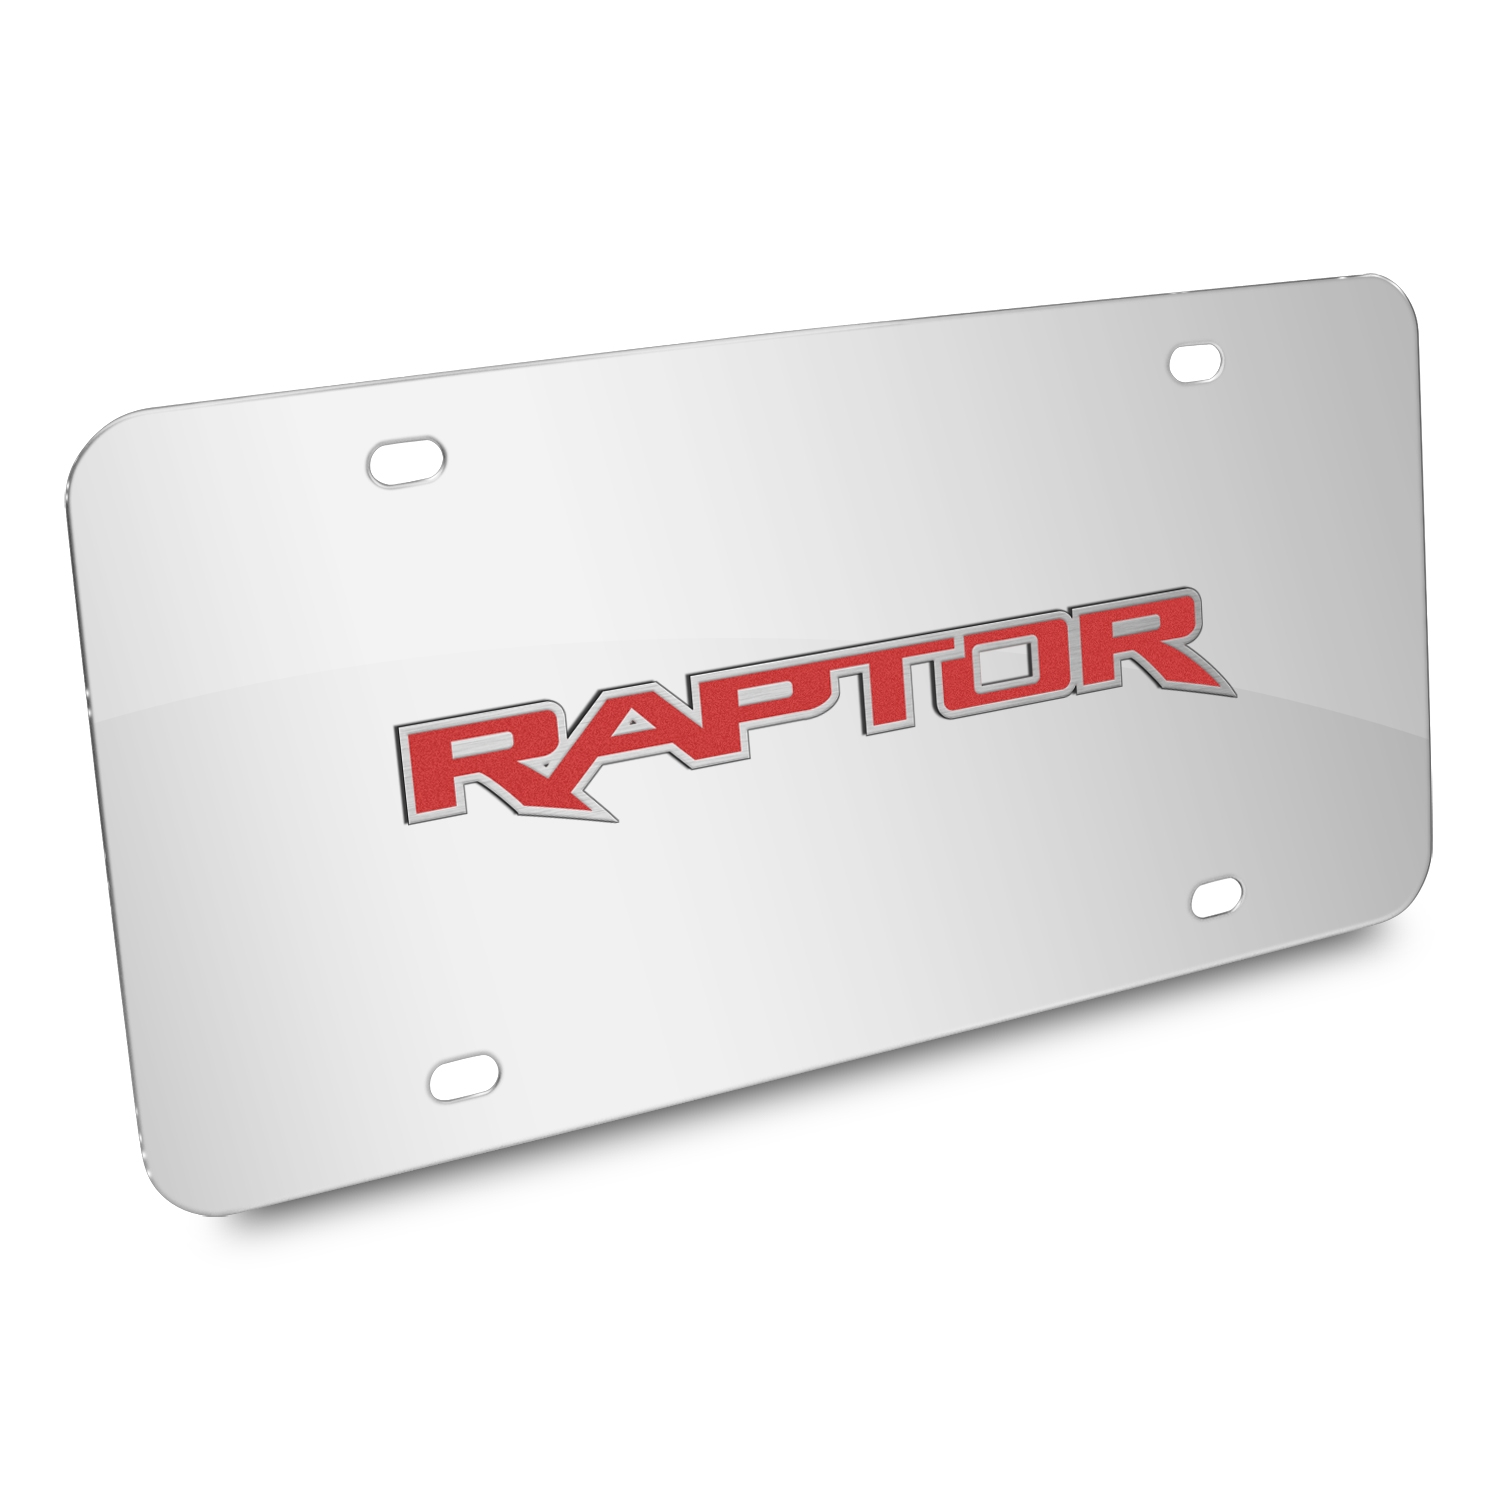 Ford 150 Raptor in Red 3D Mirror Chrome Stainless Steel License Plate